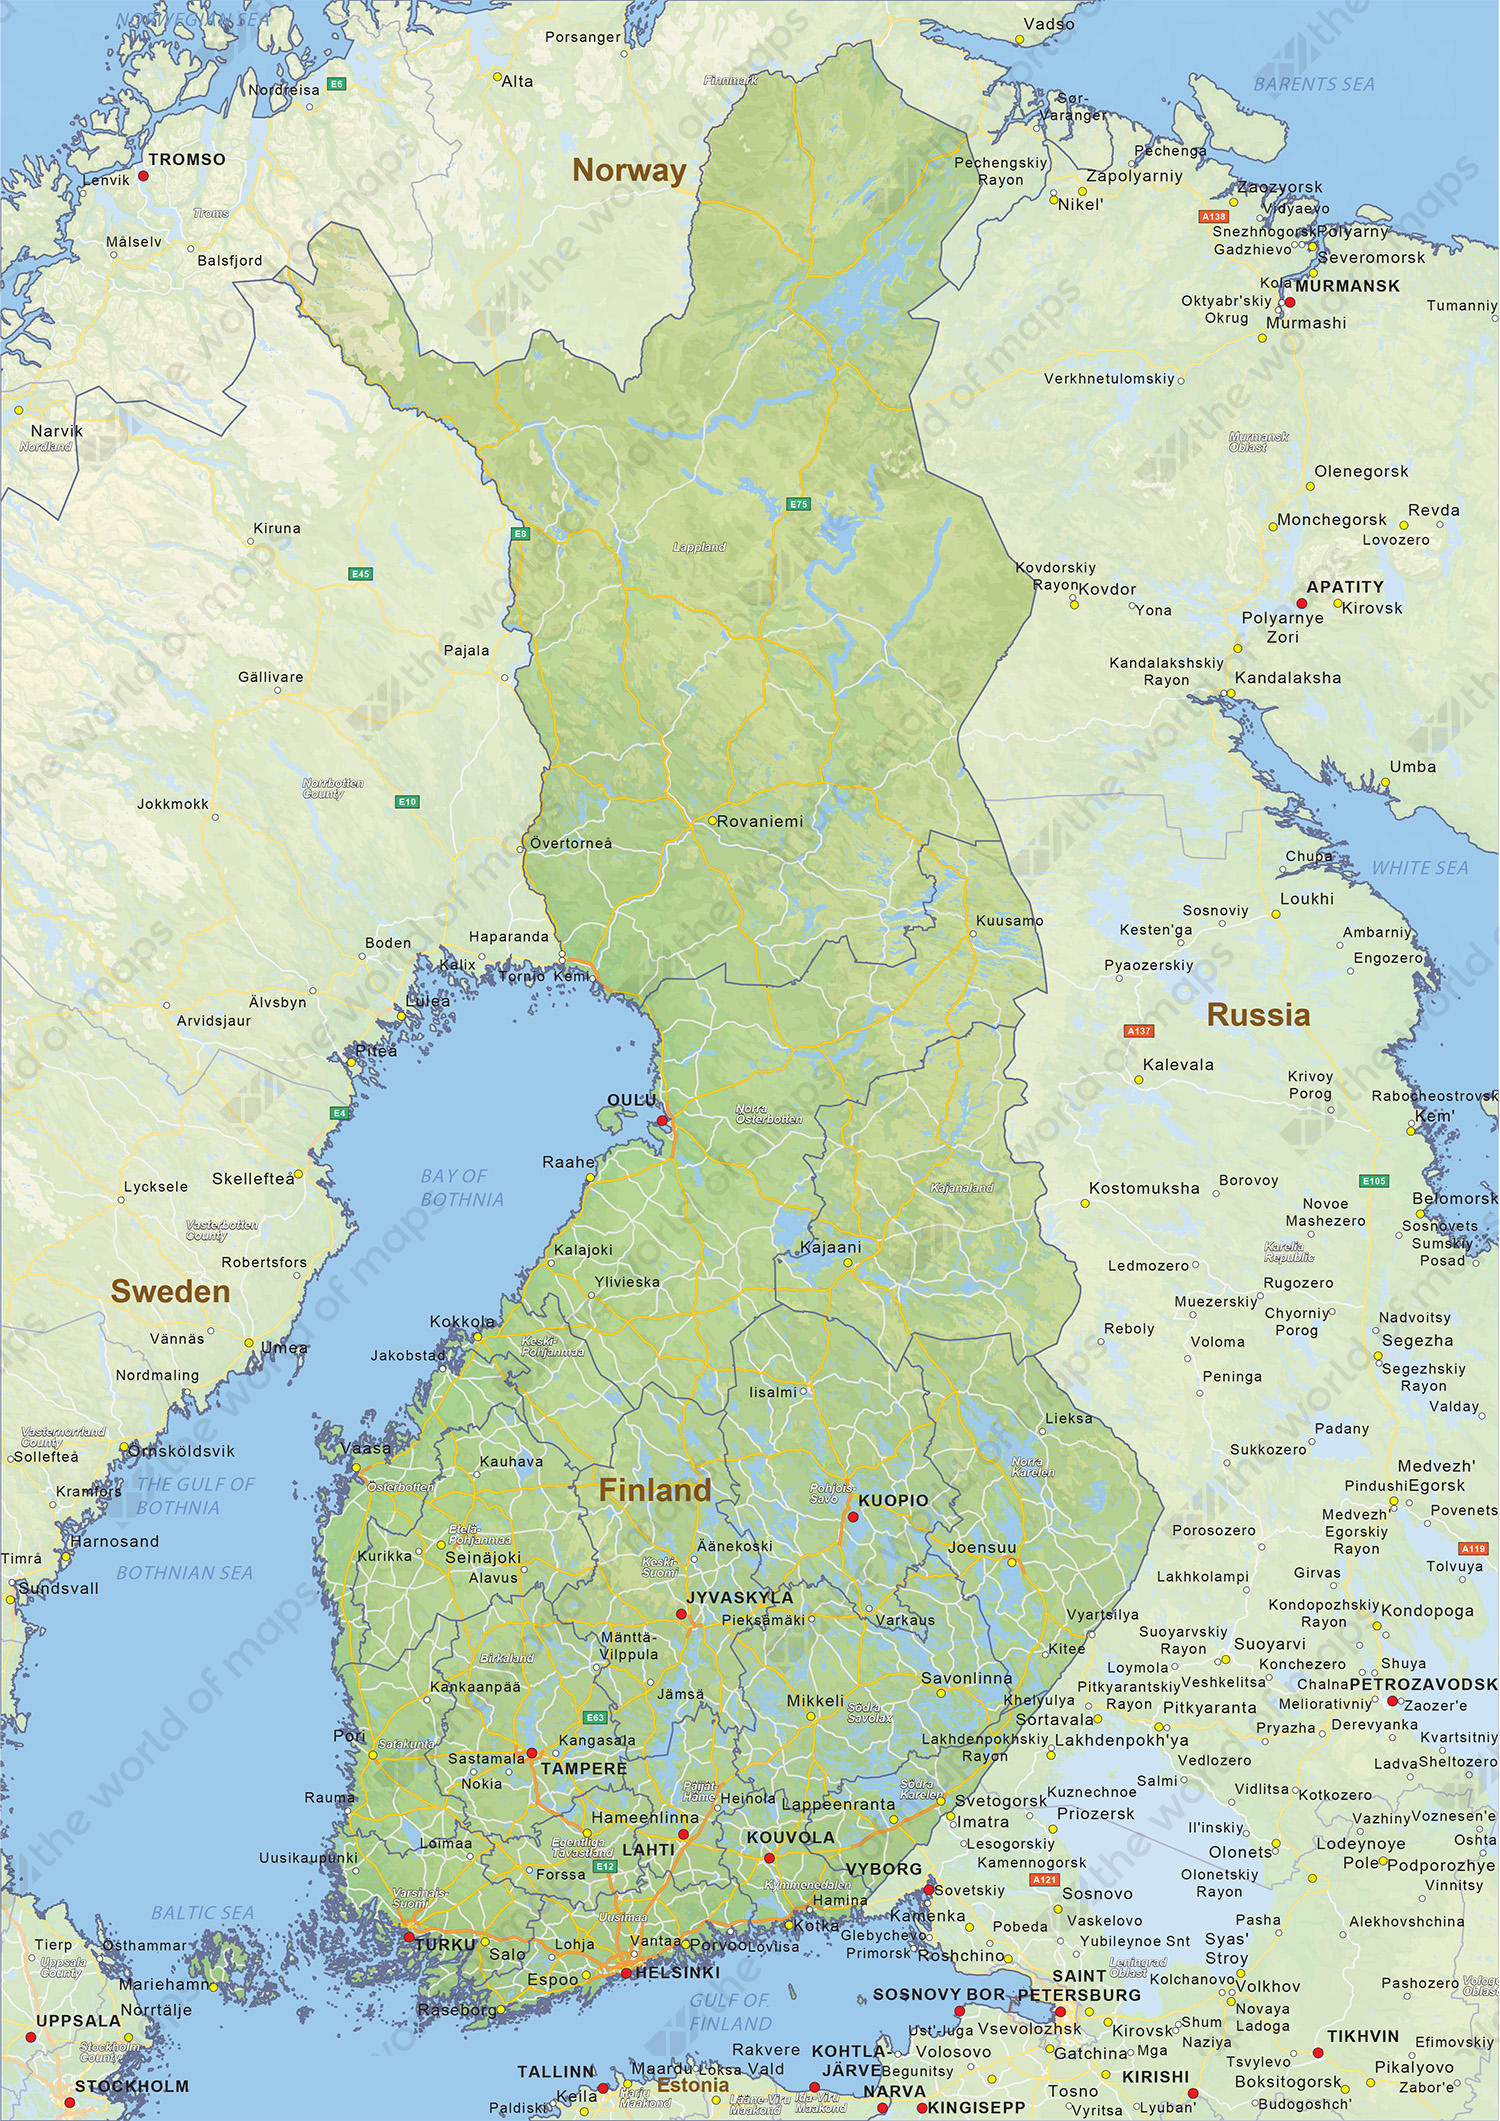 Digital physical map of Finland